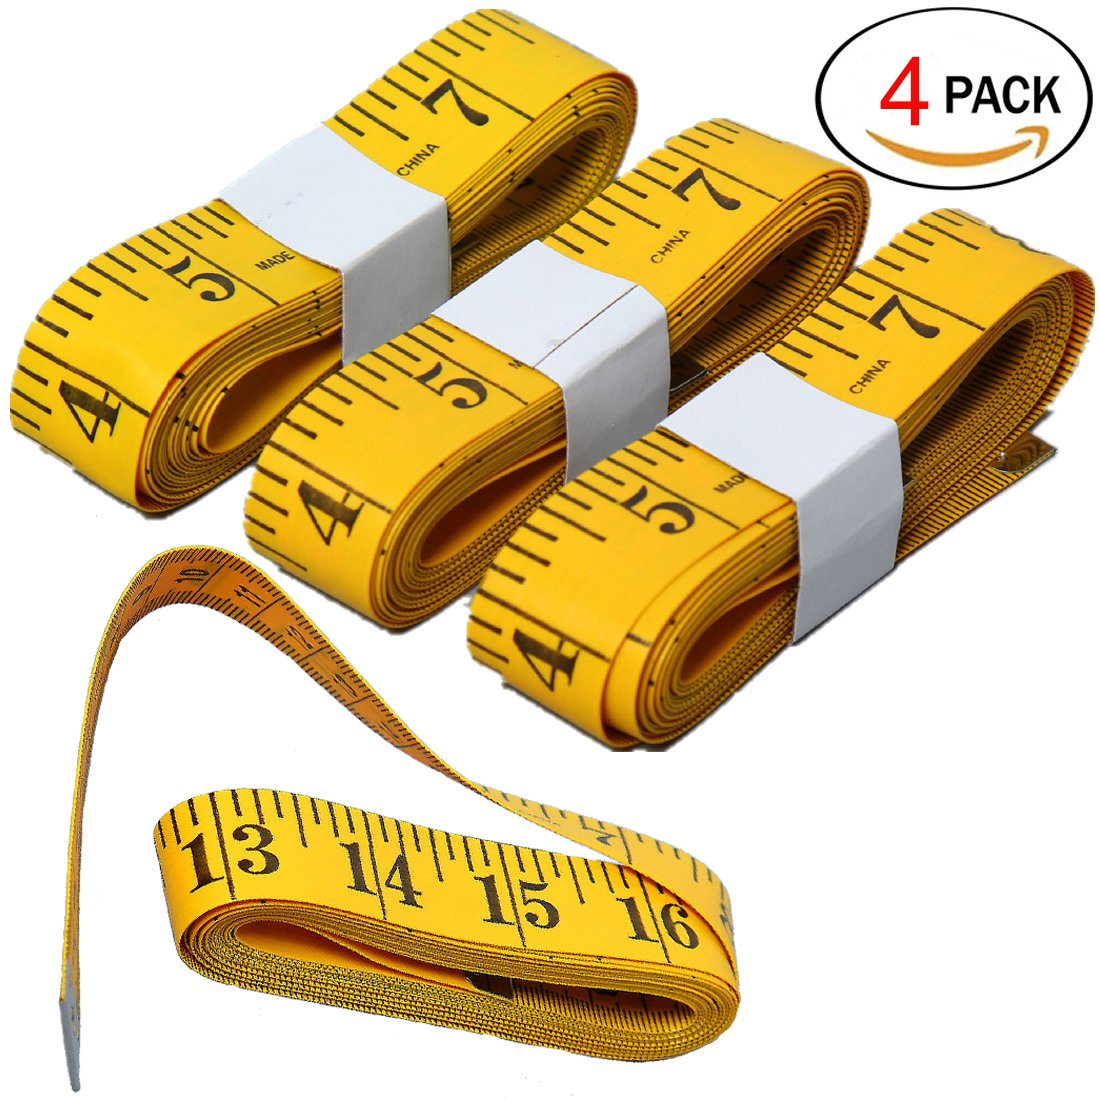 Penta Angel 120 Inches Double-Scale Soft Plastic Flexible Body Tape Measure Sewing Tailor Cloth Craft Ruler Yellow 2PCS